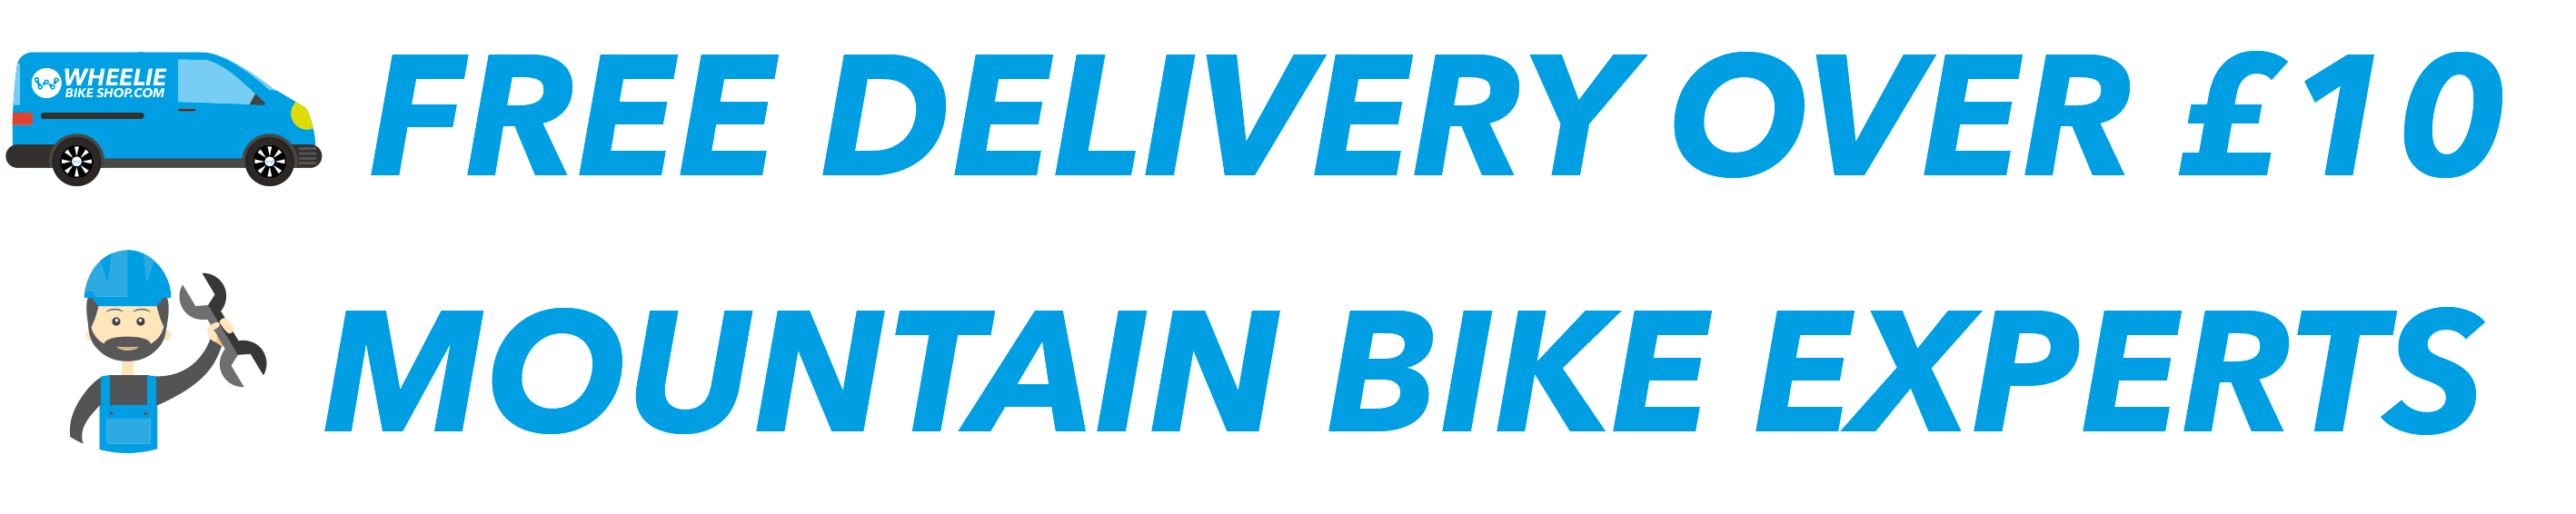 Free delivery when you spend £10 at Wheelie Bike Shop Specialist mountain bike experts available to call